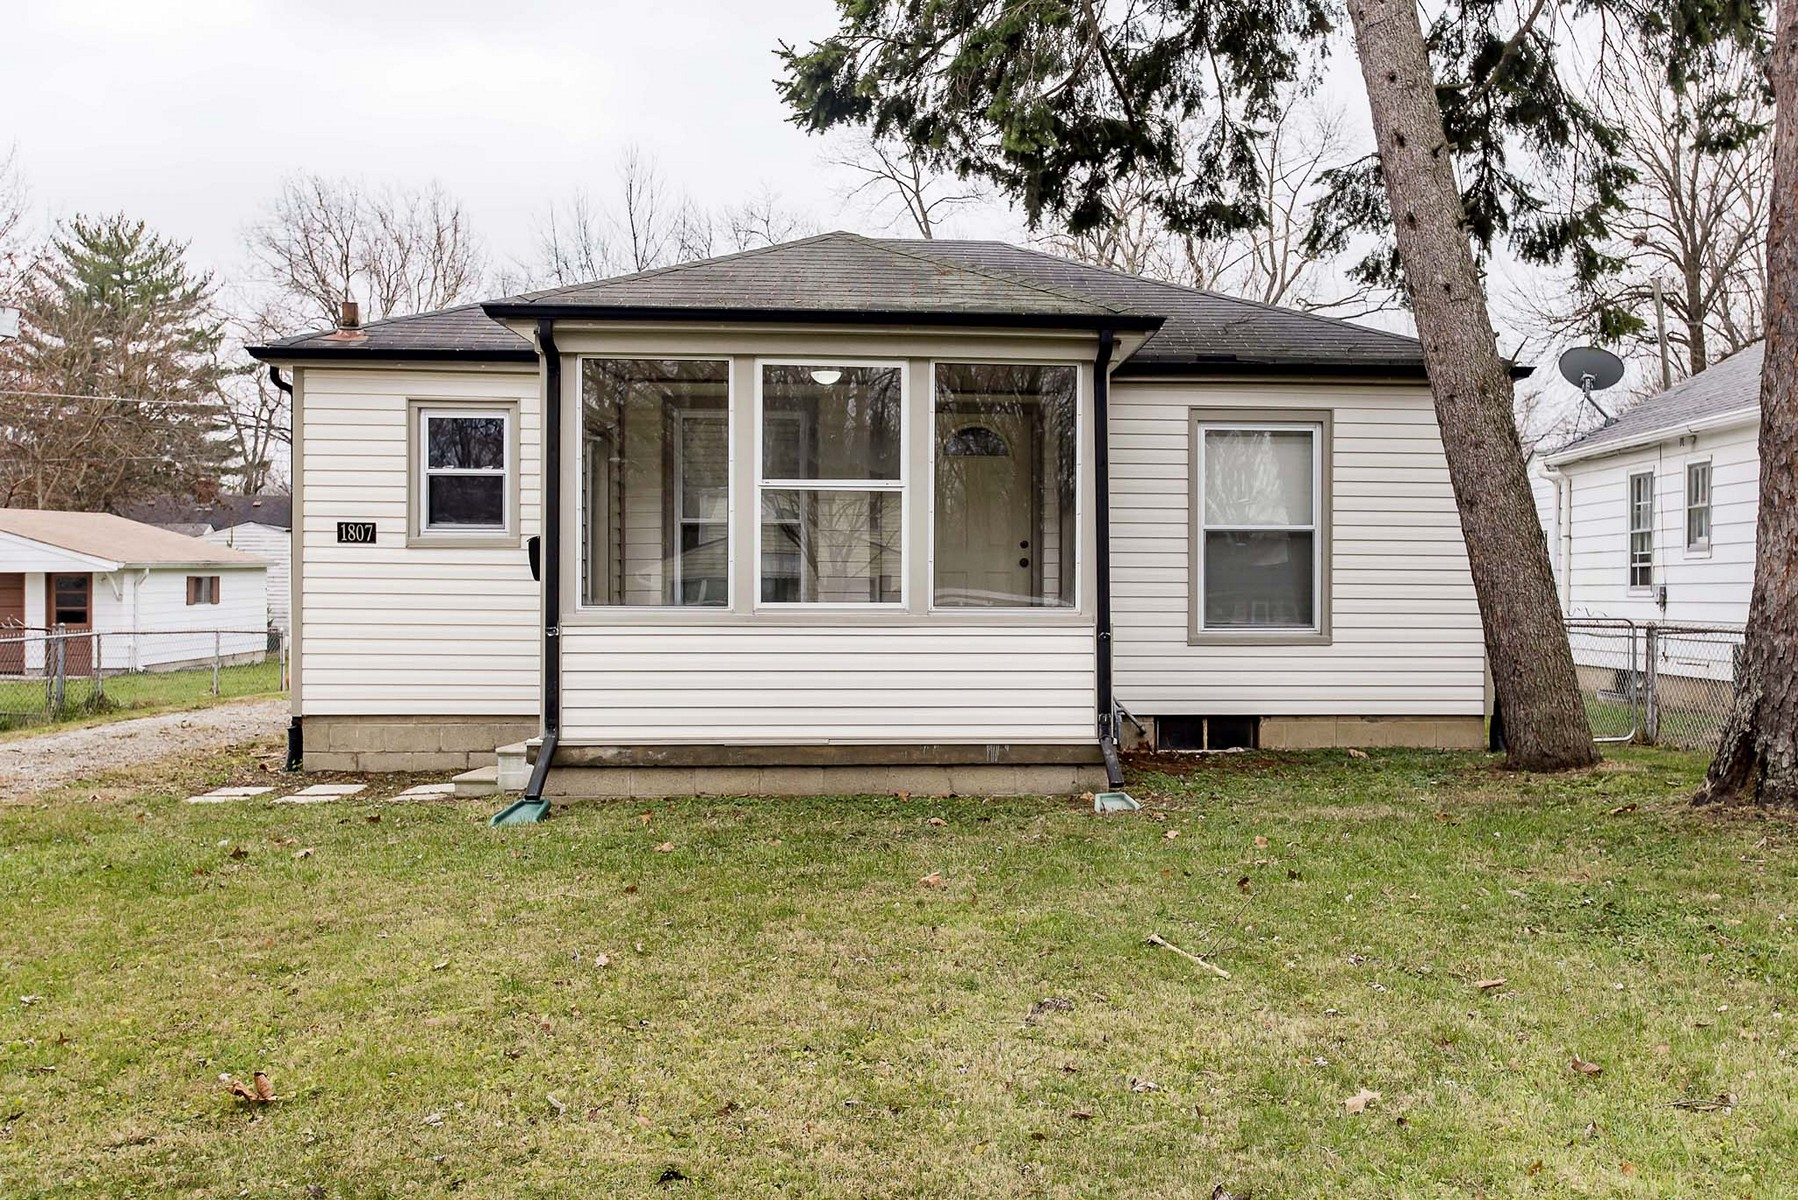 Single Family Home for Sale at Just North of Broad Ripple Bungalow 1807 E. 66th Street Indianapolis, Indiana, 46220 United States